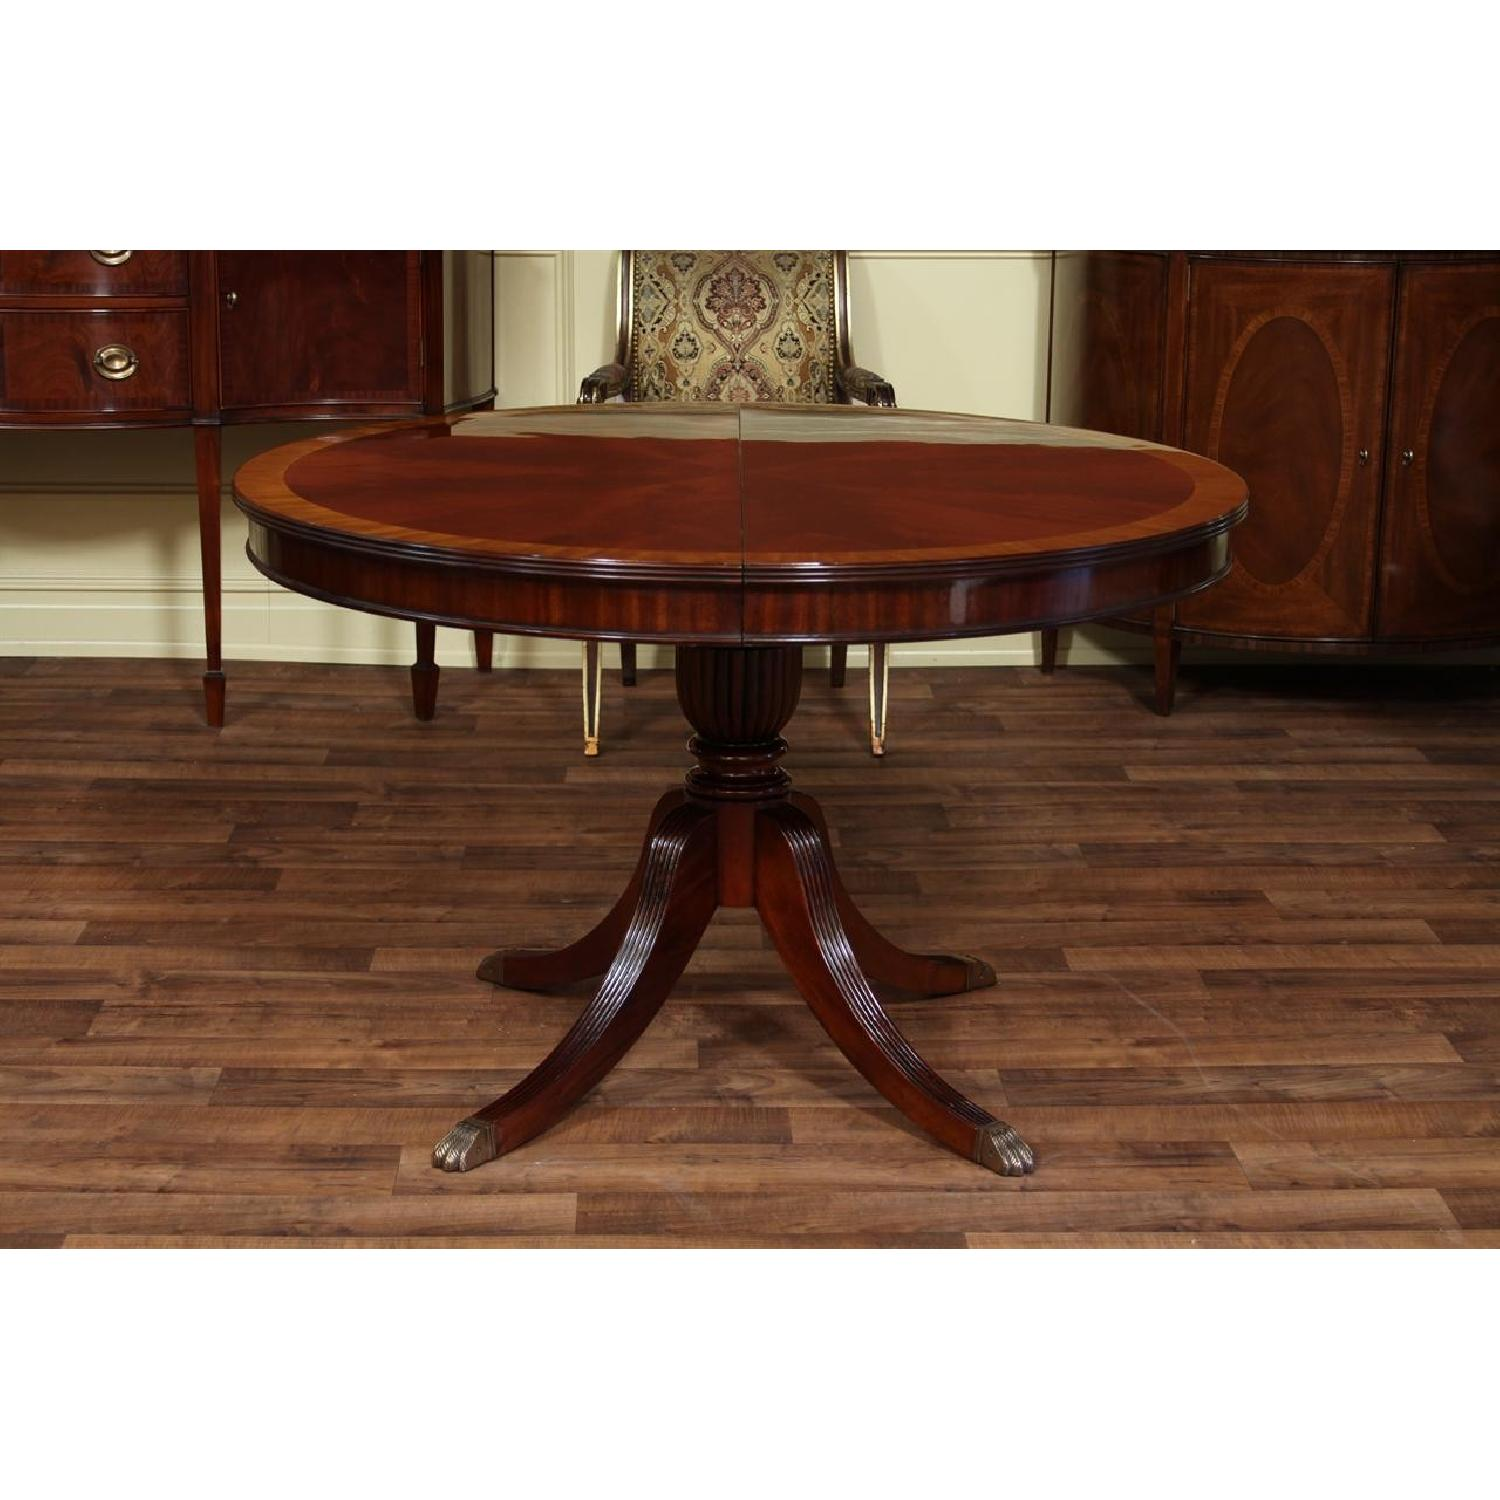 Thomasville Mahogany Coll Pedestal Dining Table - image-1